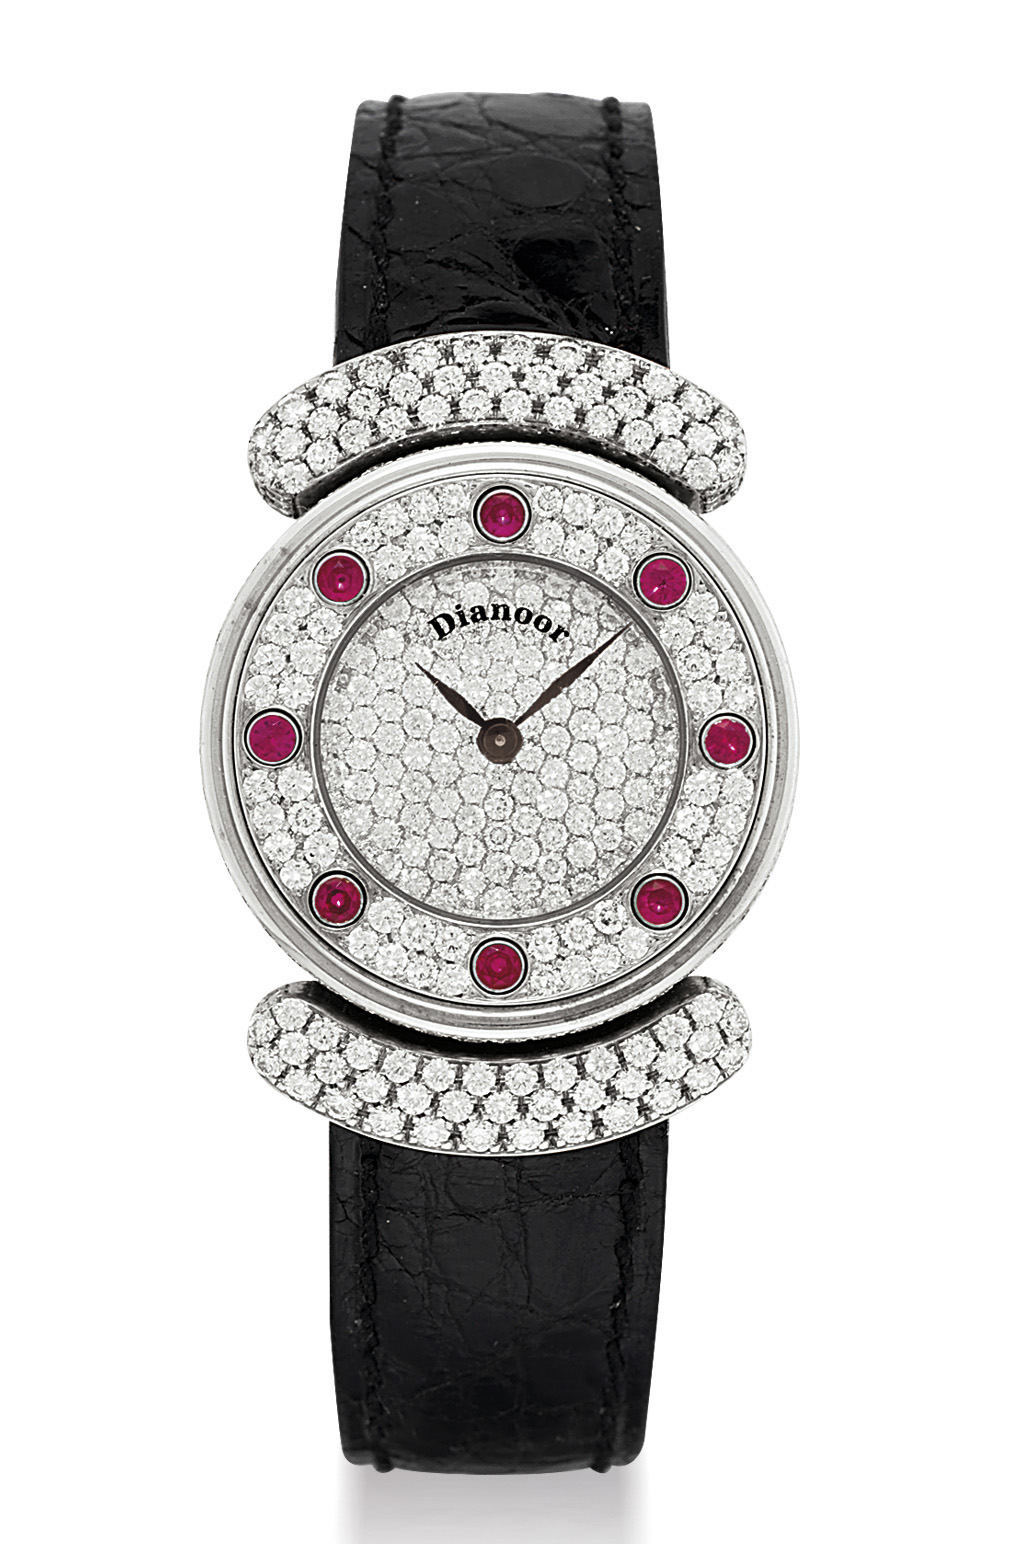 DIANOOR. A LADY'S 18K WHITE GOLD, DIAMOND AND RUBY-SET WRISTWATCH